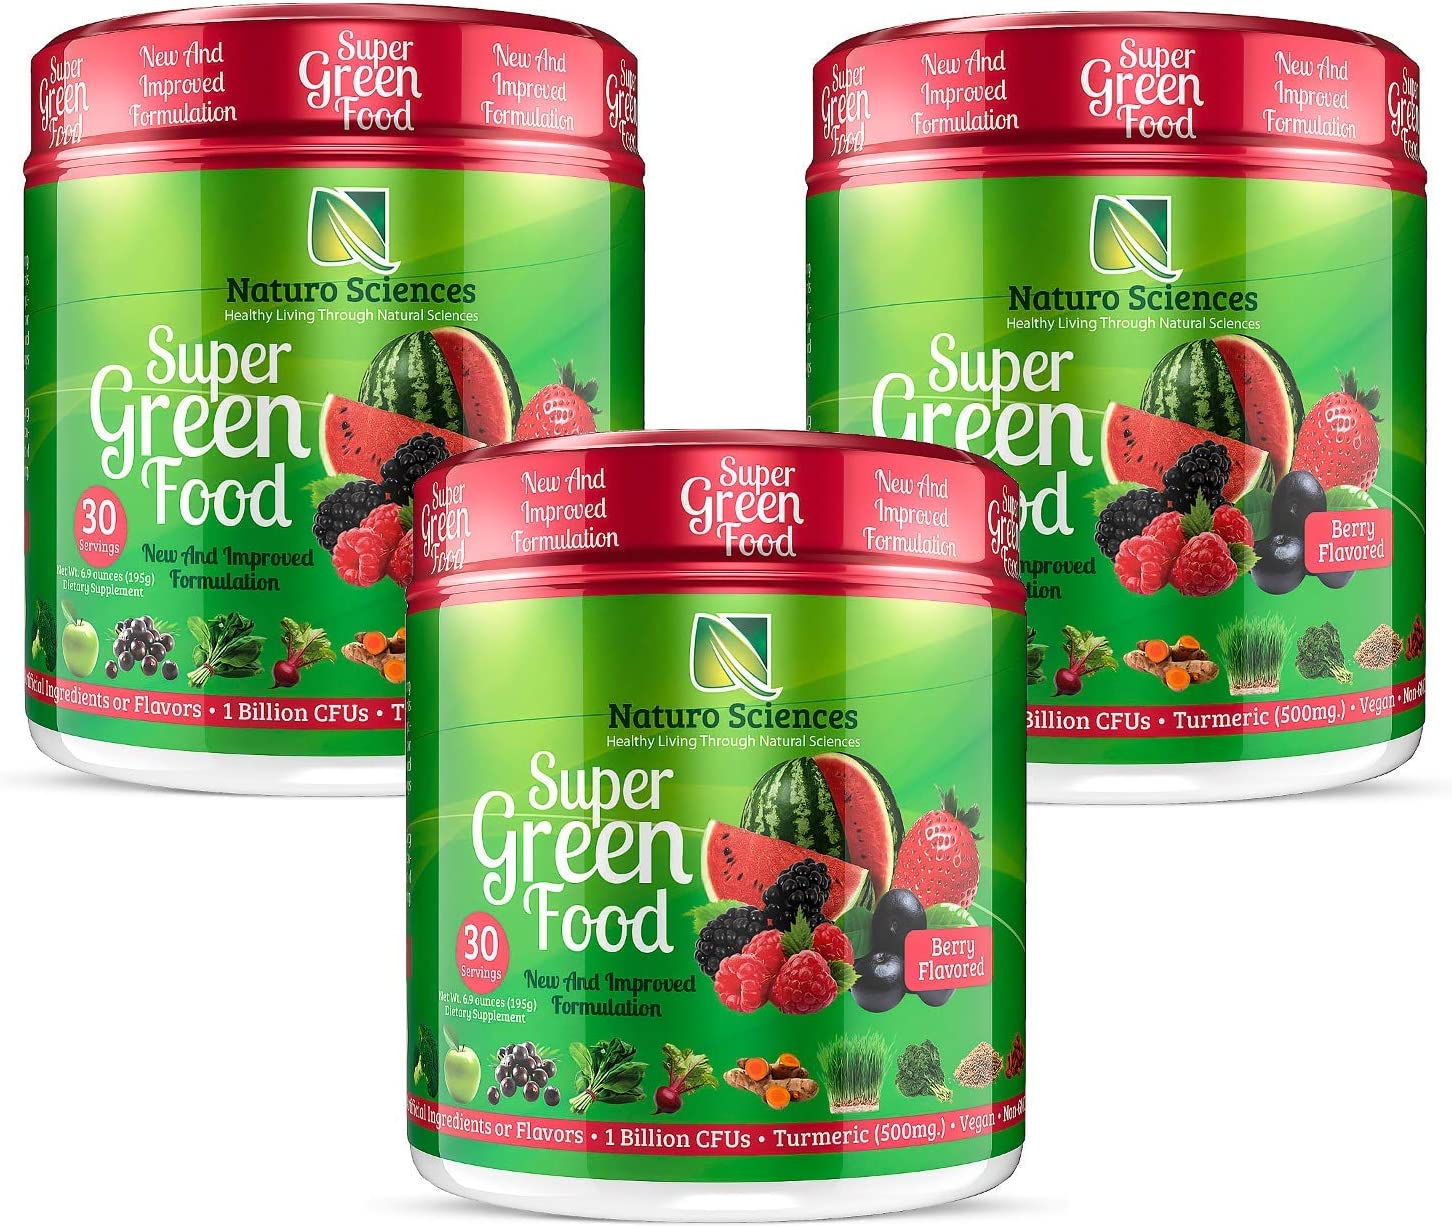 100% Natural Greens Powder  10+ Hard to Get Superfoods  Greens Supplement Powder 1 Month's Supply  Green Organic Blend with 1 Billion CFU Probiotics + 500mg Turmeric,Berry Flavor, Pack of Three